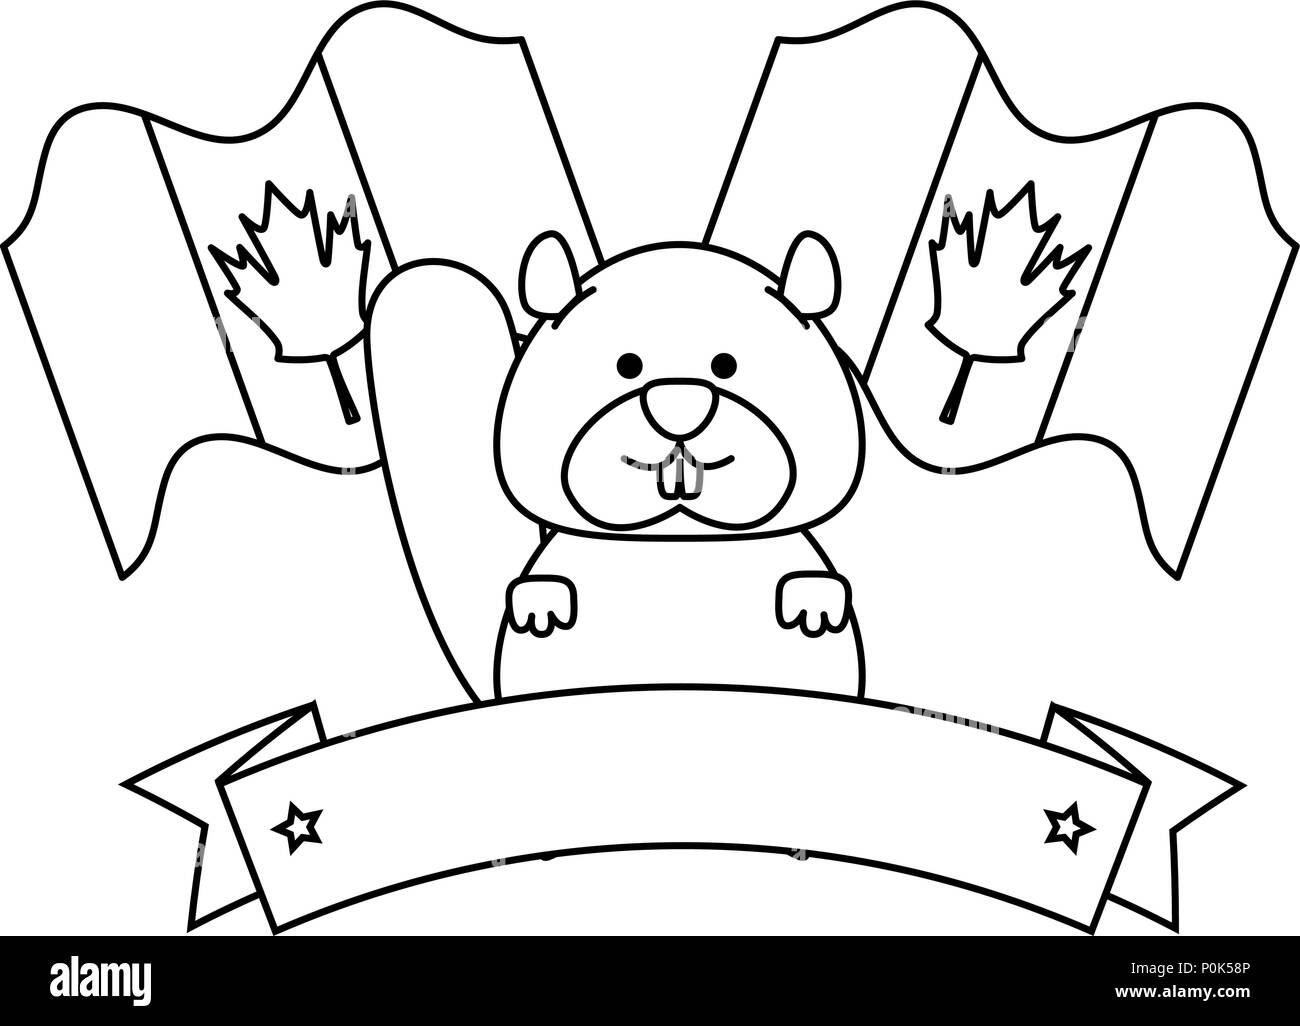 flags black and white stock photos images page 3 alamy 17th Century French Flag cute canadian marmot with flags stock image